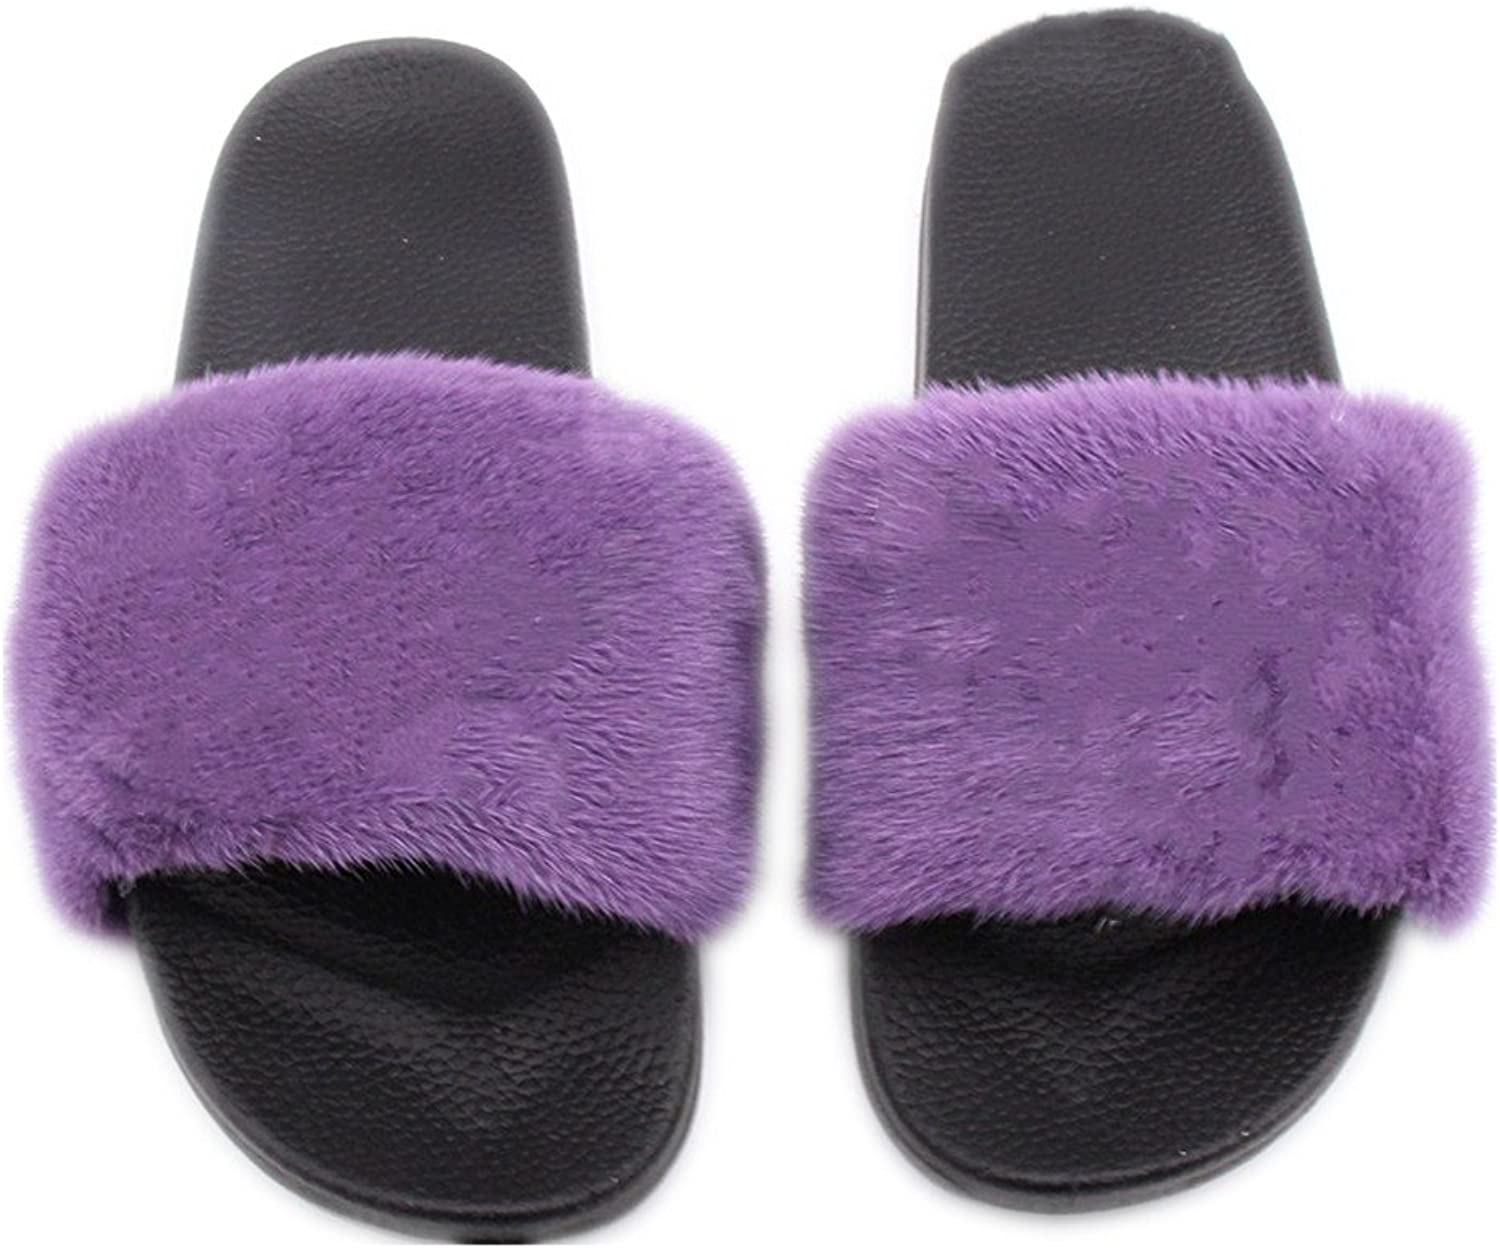 QMFUR Fashion Women's Real Mink Fur Slippers Soft Sole Flat (8, Black-Purple)